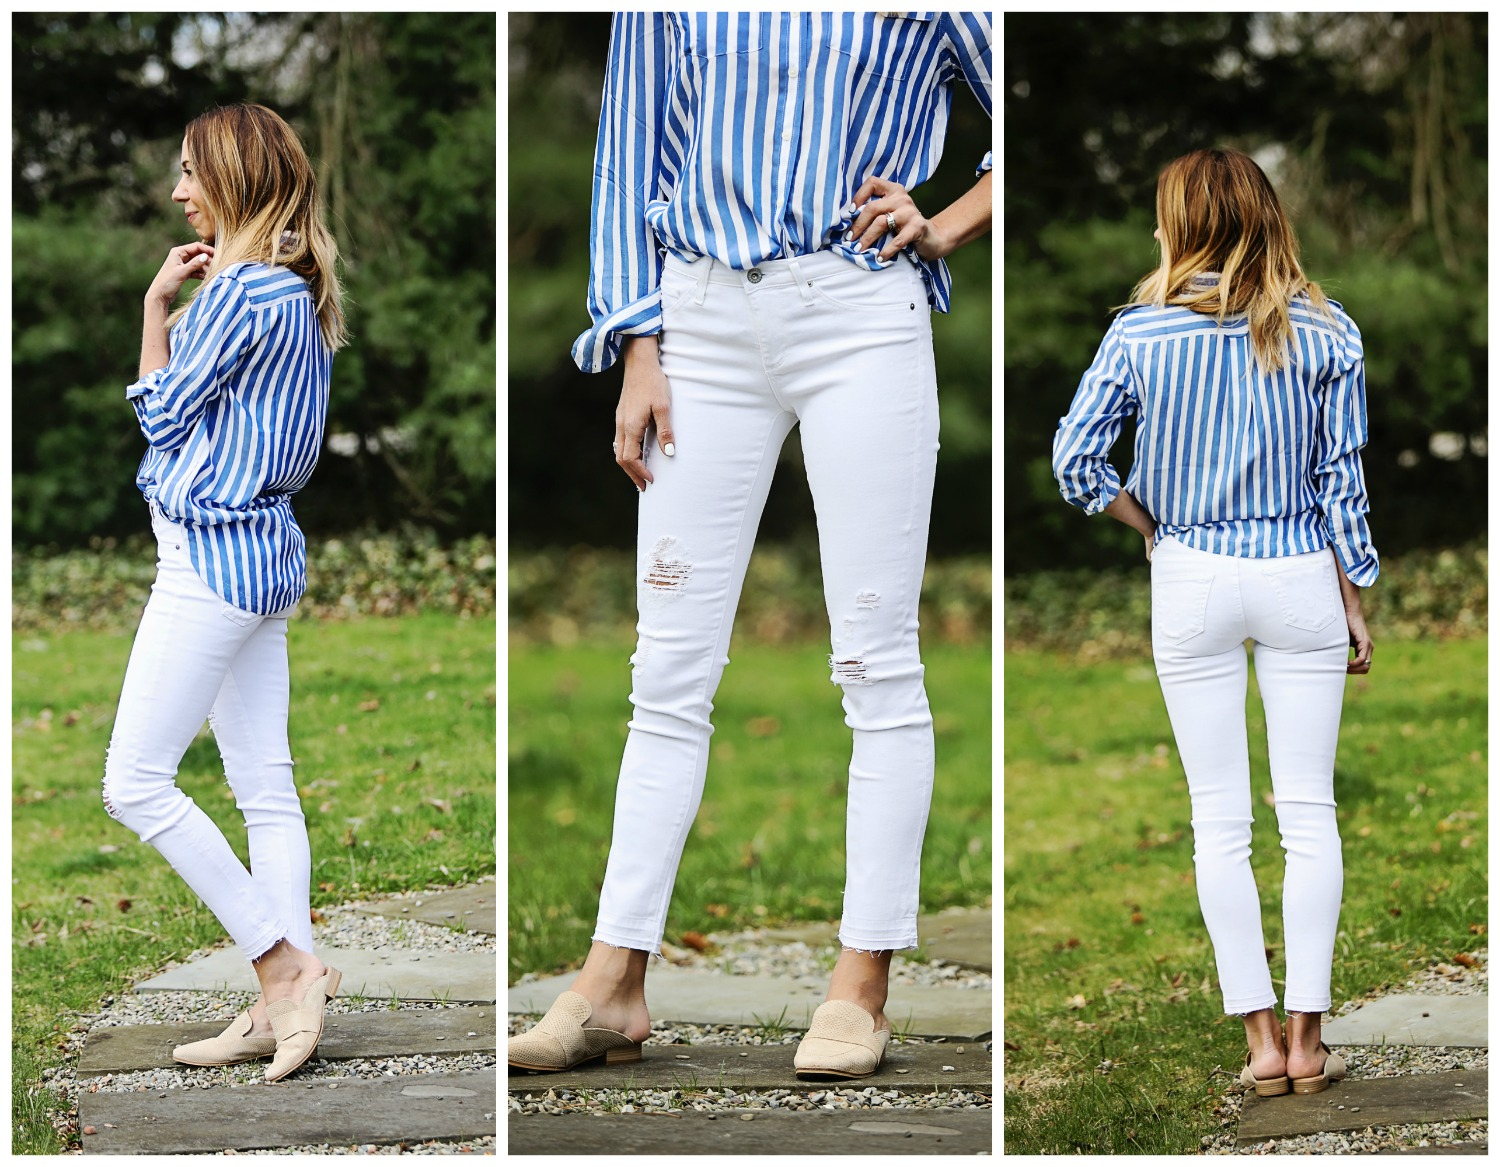 The Motherchic wearing AG distressed jeans